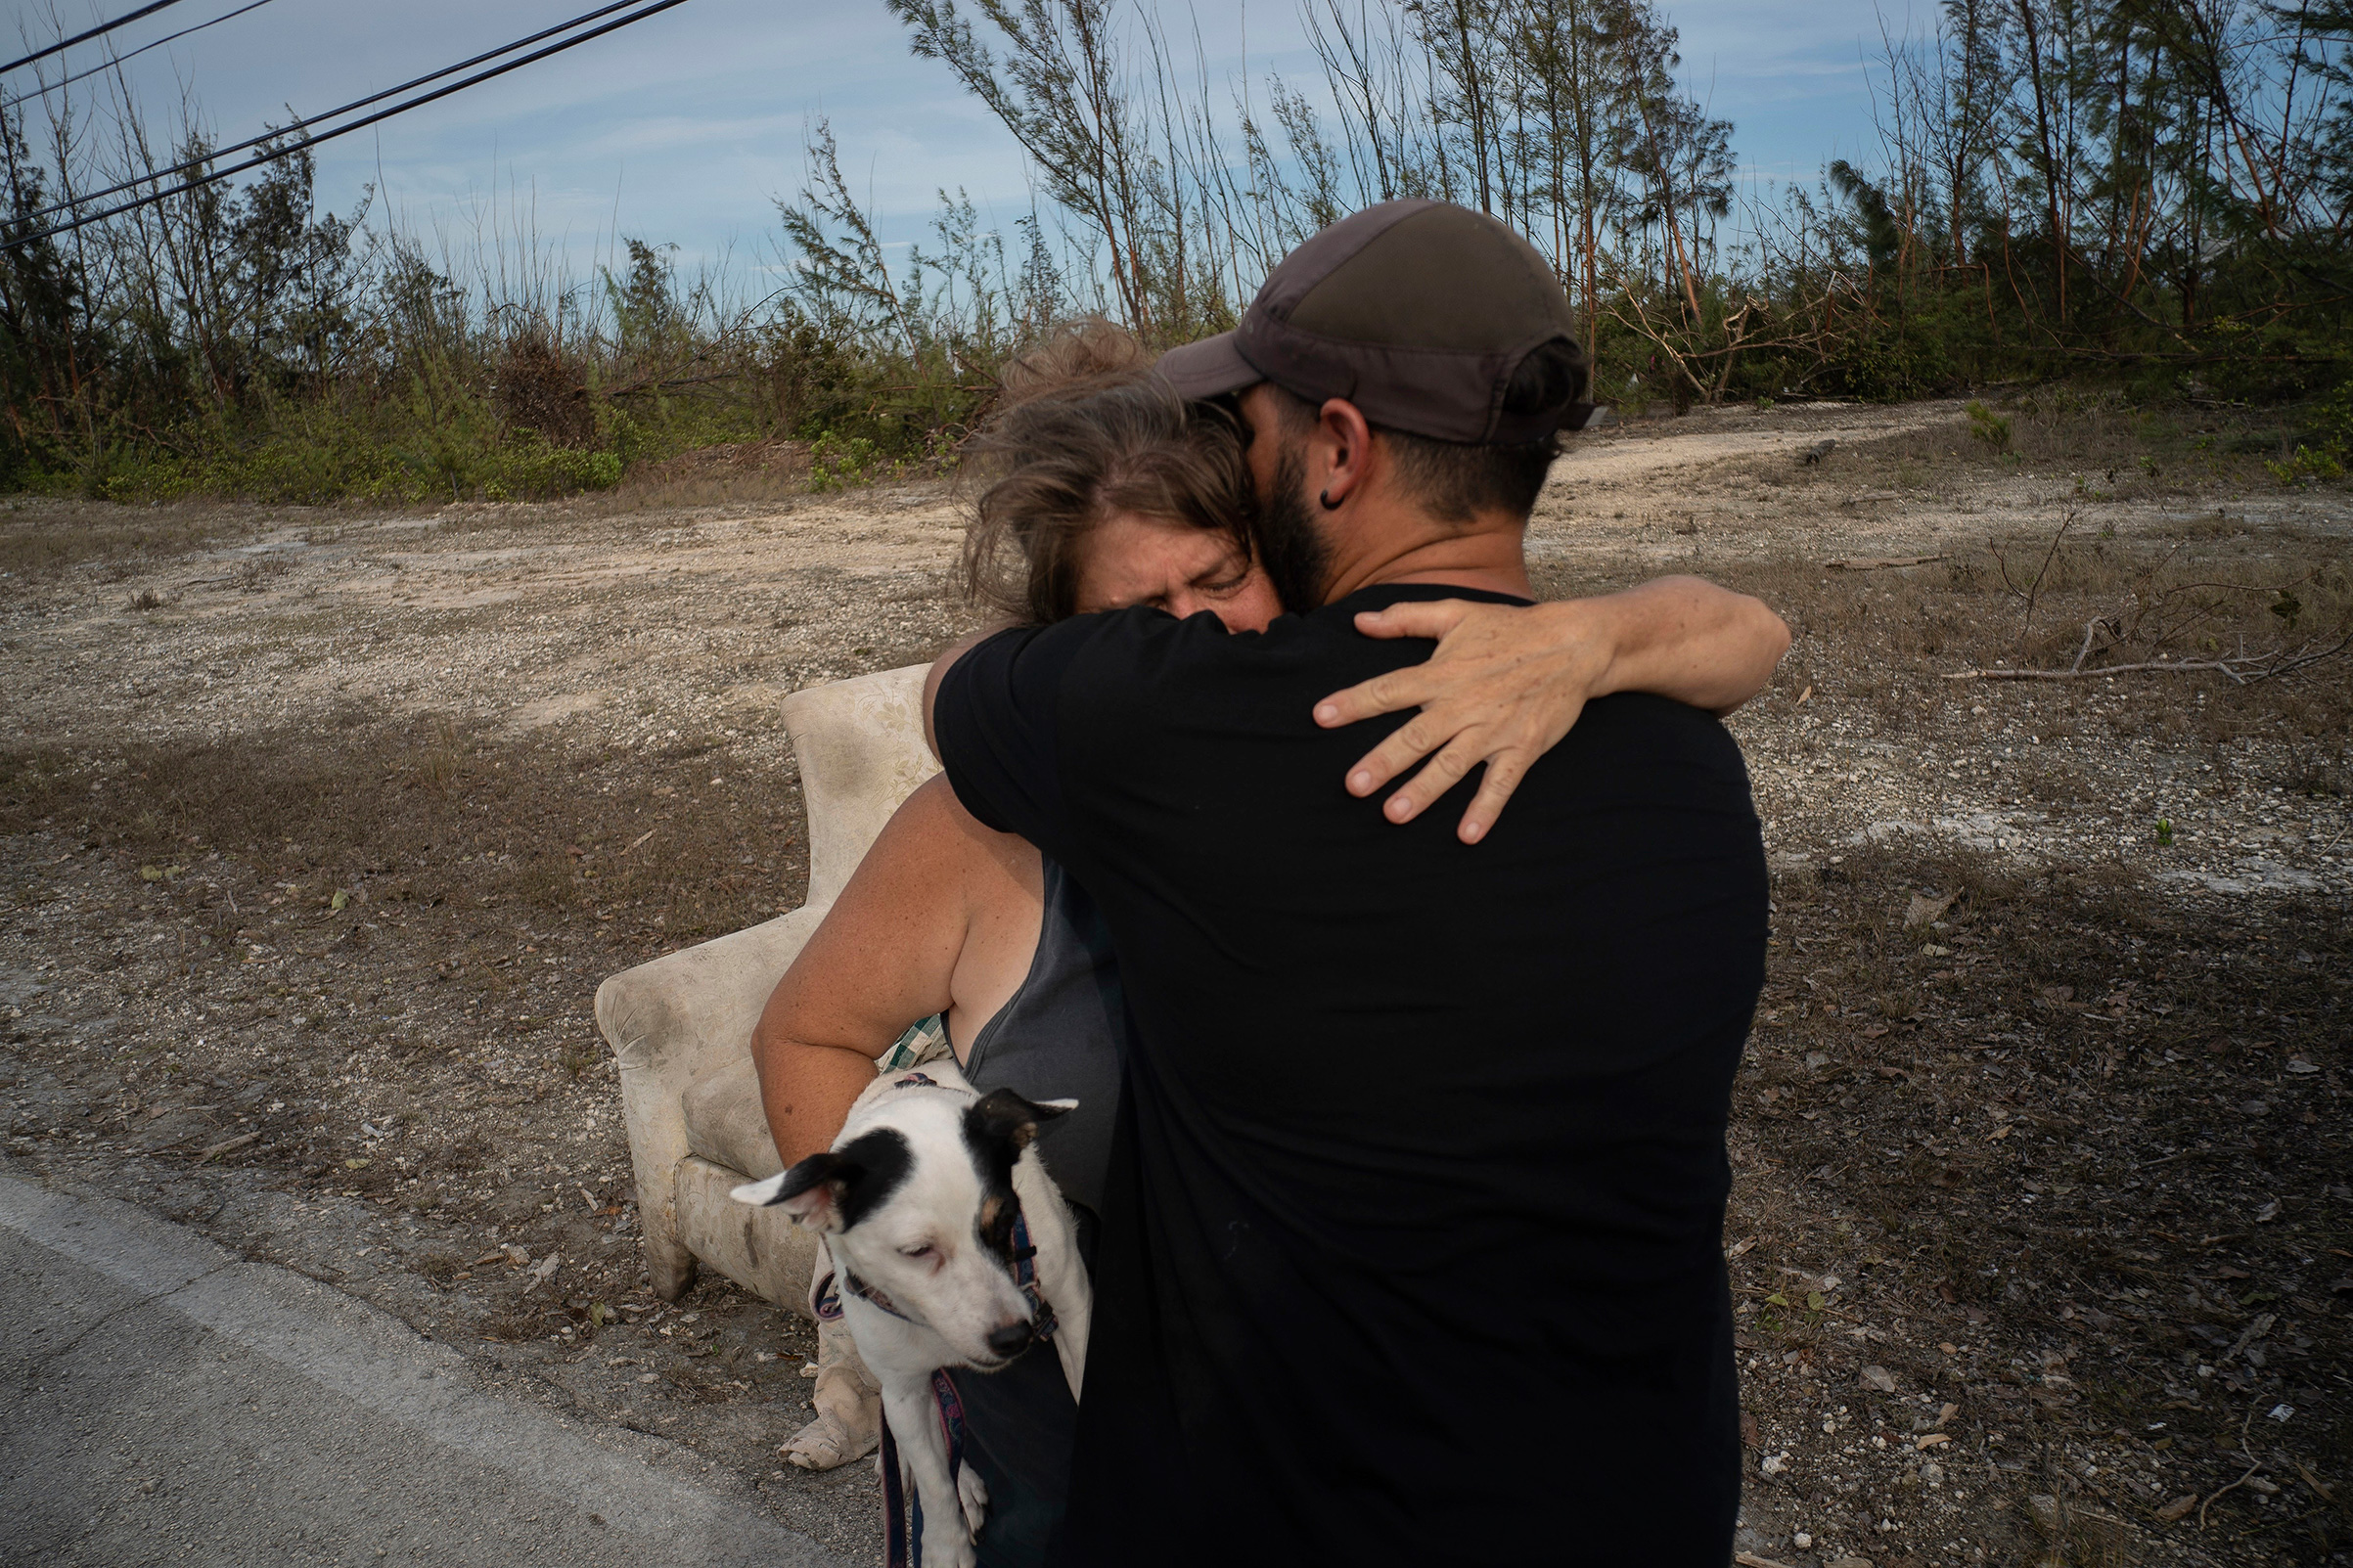 Sissel Mosvold embraces a volunteer who helped rescue her mother from her home when it was flooded by the waters of Hurricane Dorian, in the outskirts of Freeport, Bahamas, Sept. 4, 2019.